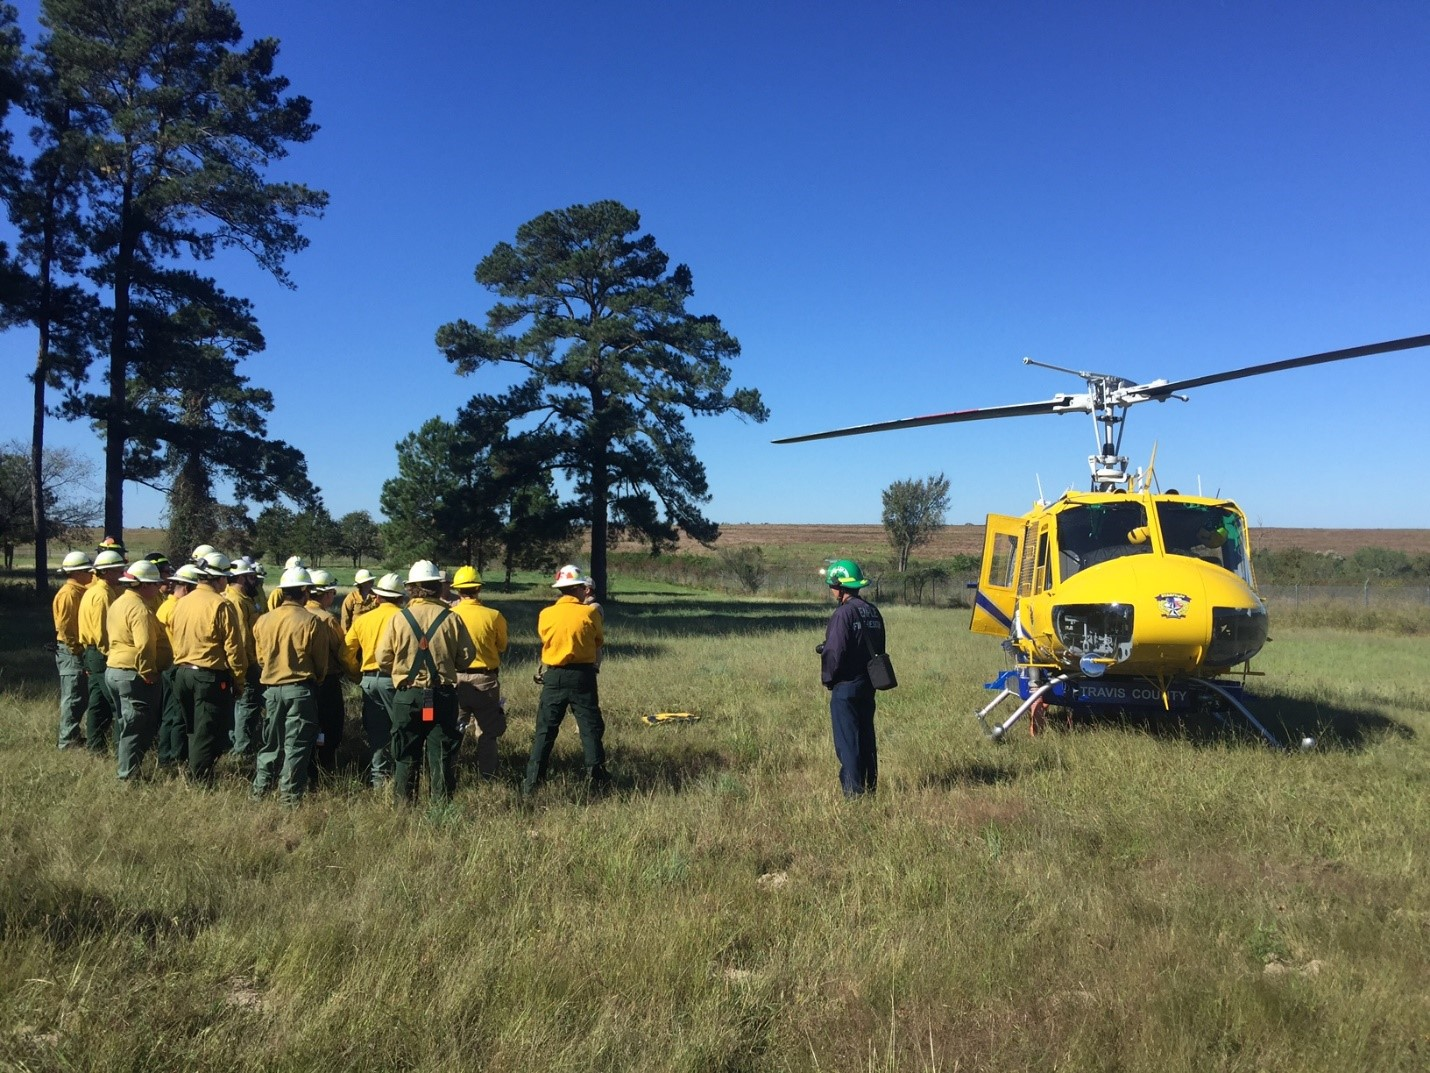 Over 315 students from 13 states are expected to attend the 20th annual Capital Area Interagency Wildfire and Incident Management Academy that will be held from Oct. 13-25 at the Camp Swift National Guard Facility located north of Bastrop.